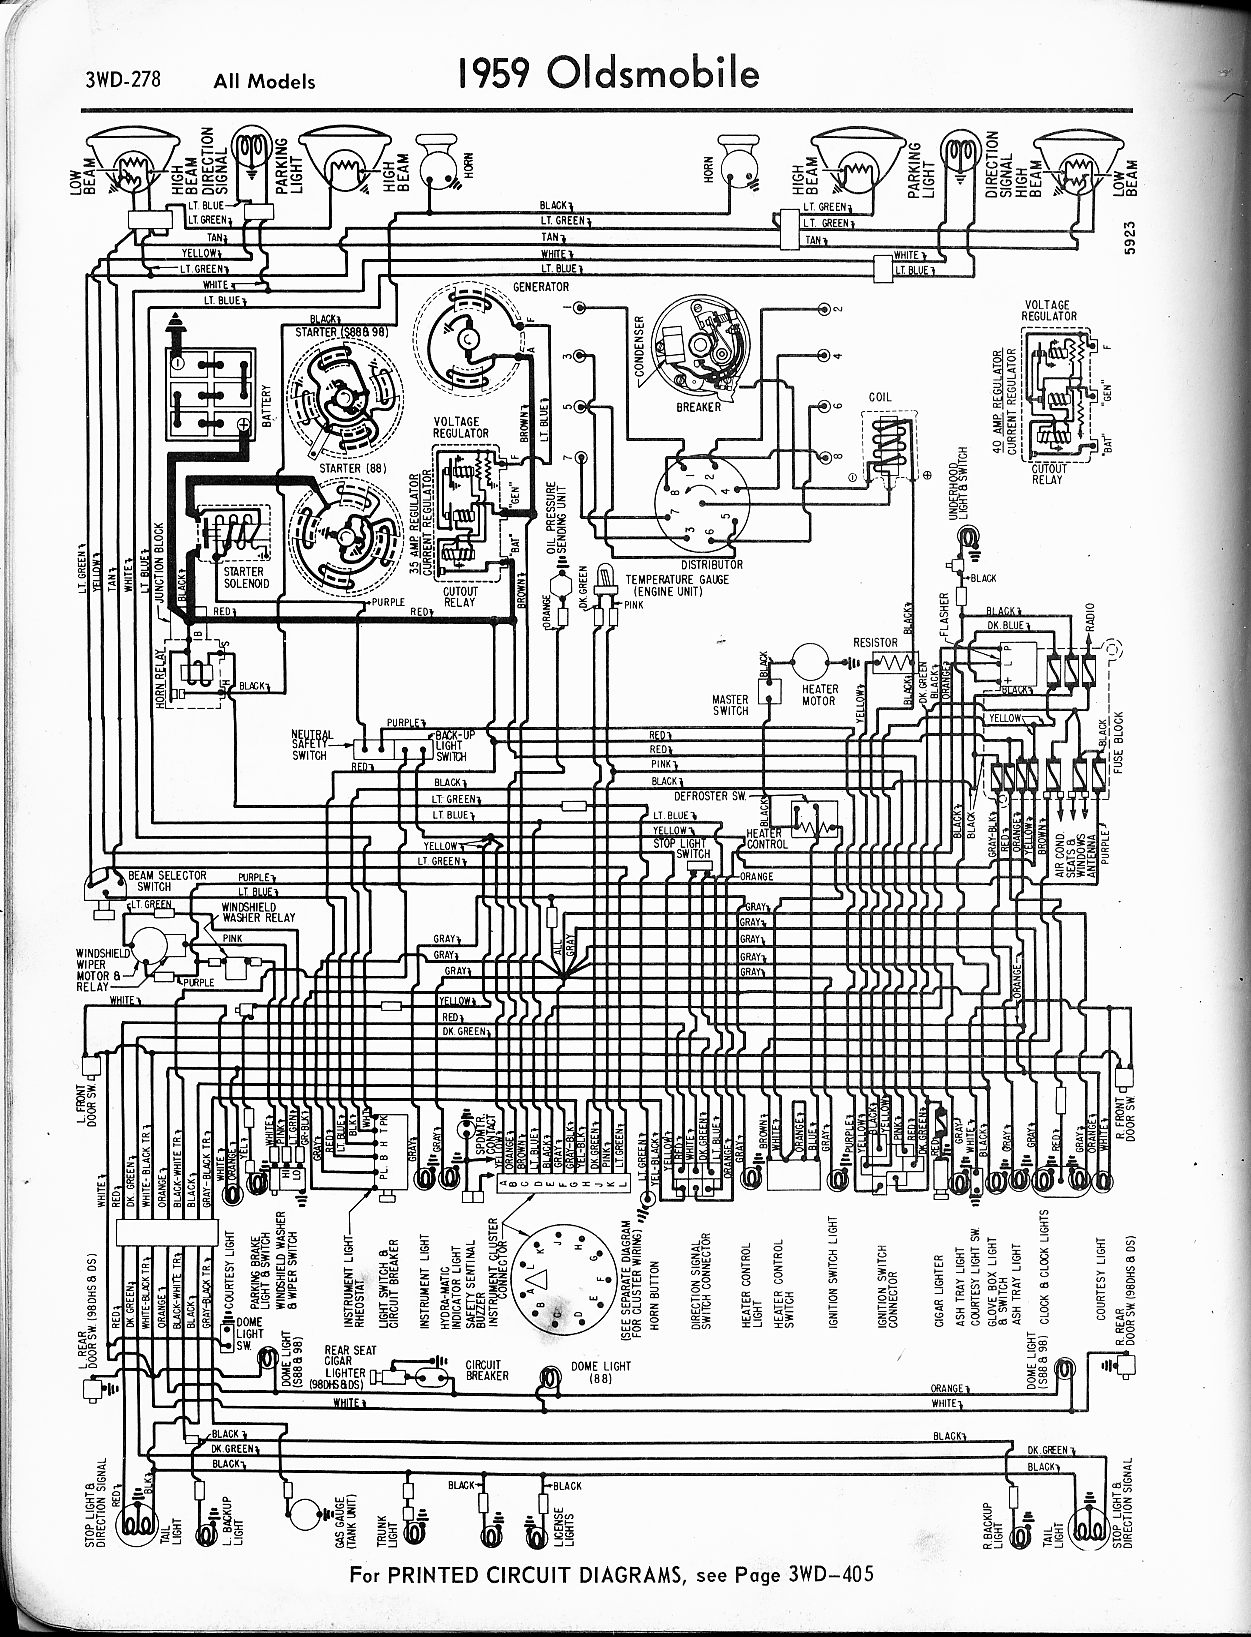 1971 oldsmobile 442 wiring harness search for wiring diagrams u2022 rh stephenpoon co 1970 oldsmobile cutlass wiring diagram 1970 olds 442 wiring diagram